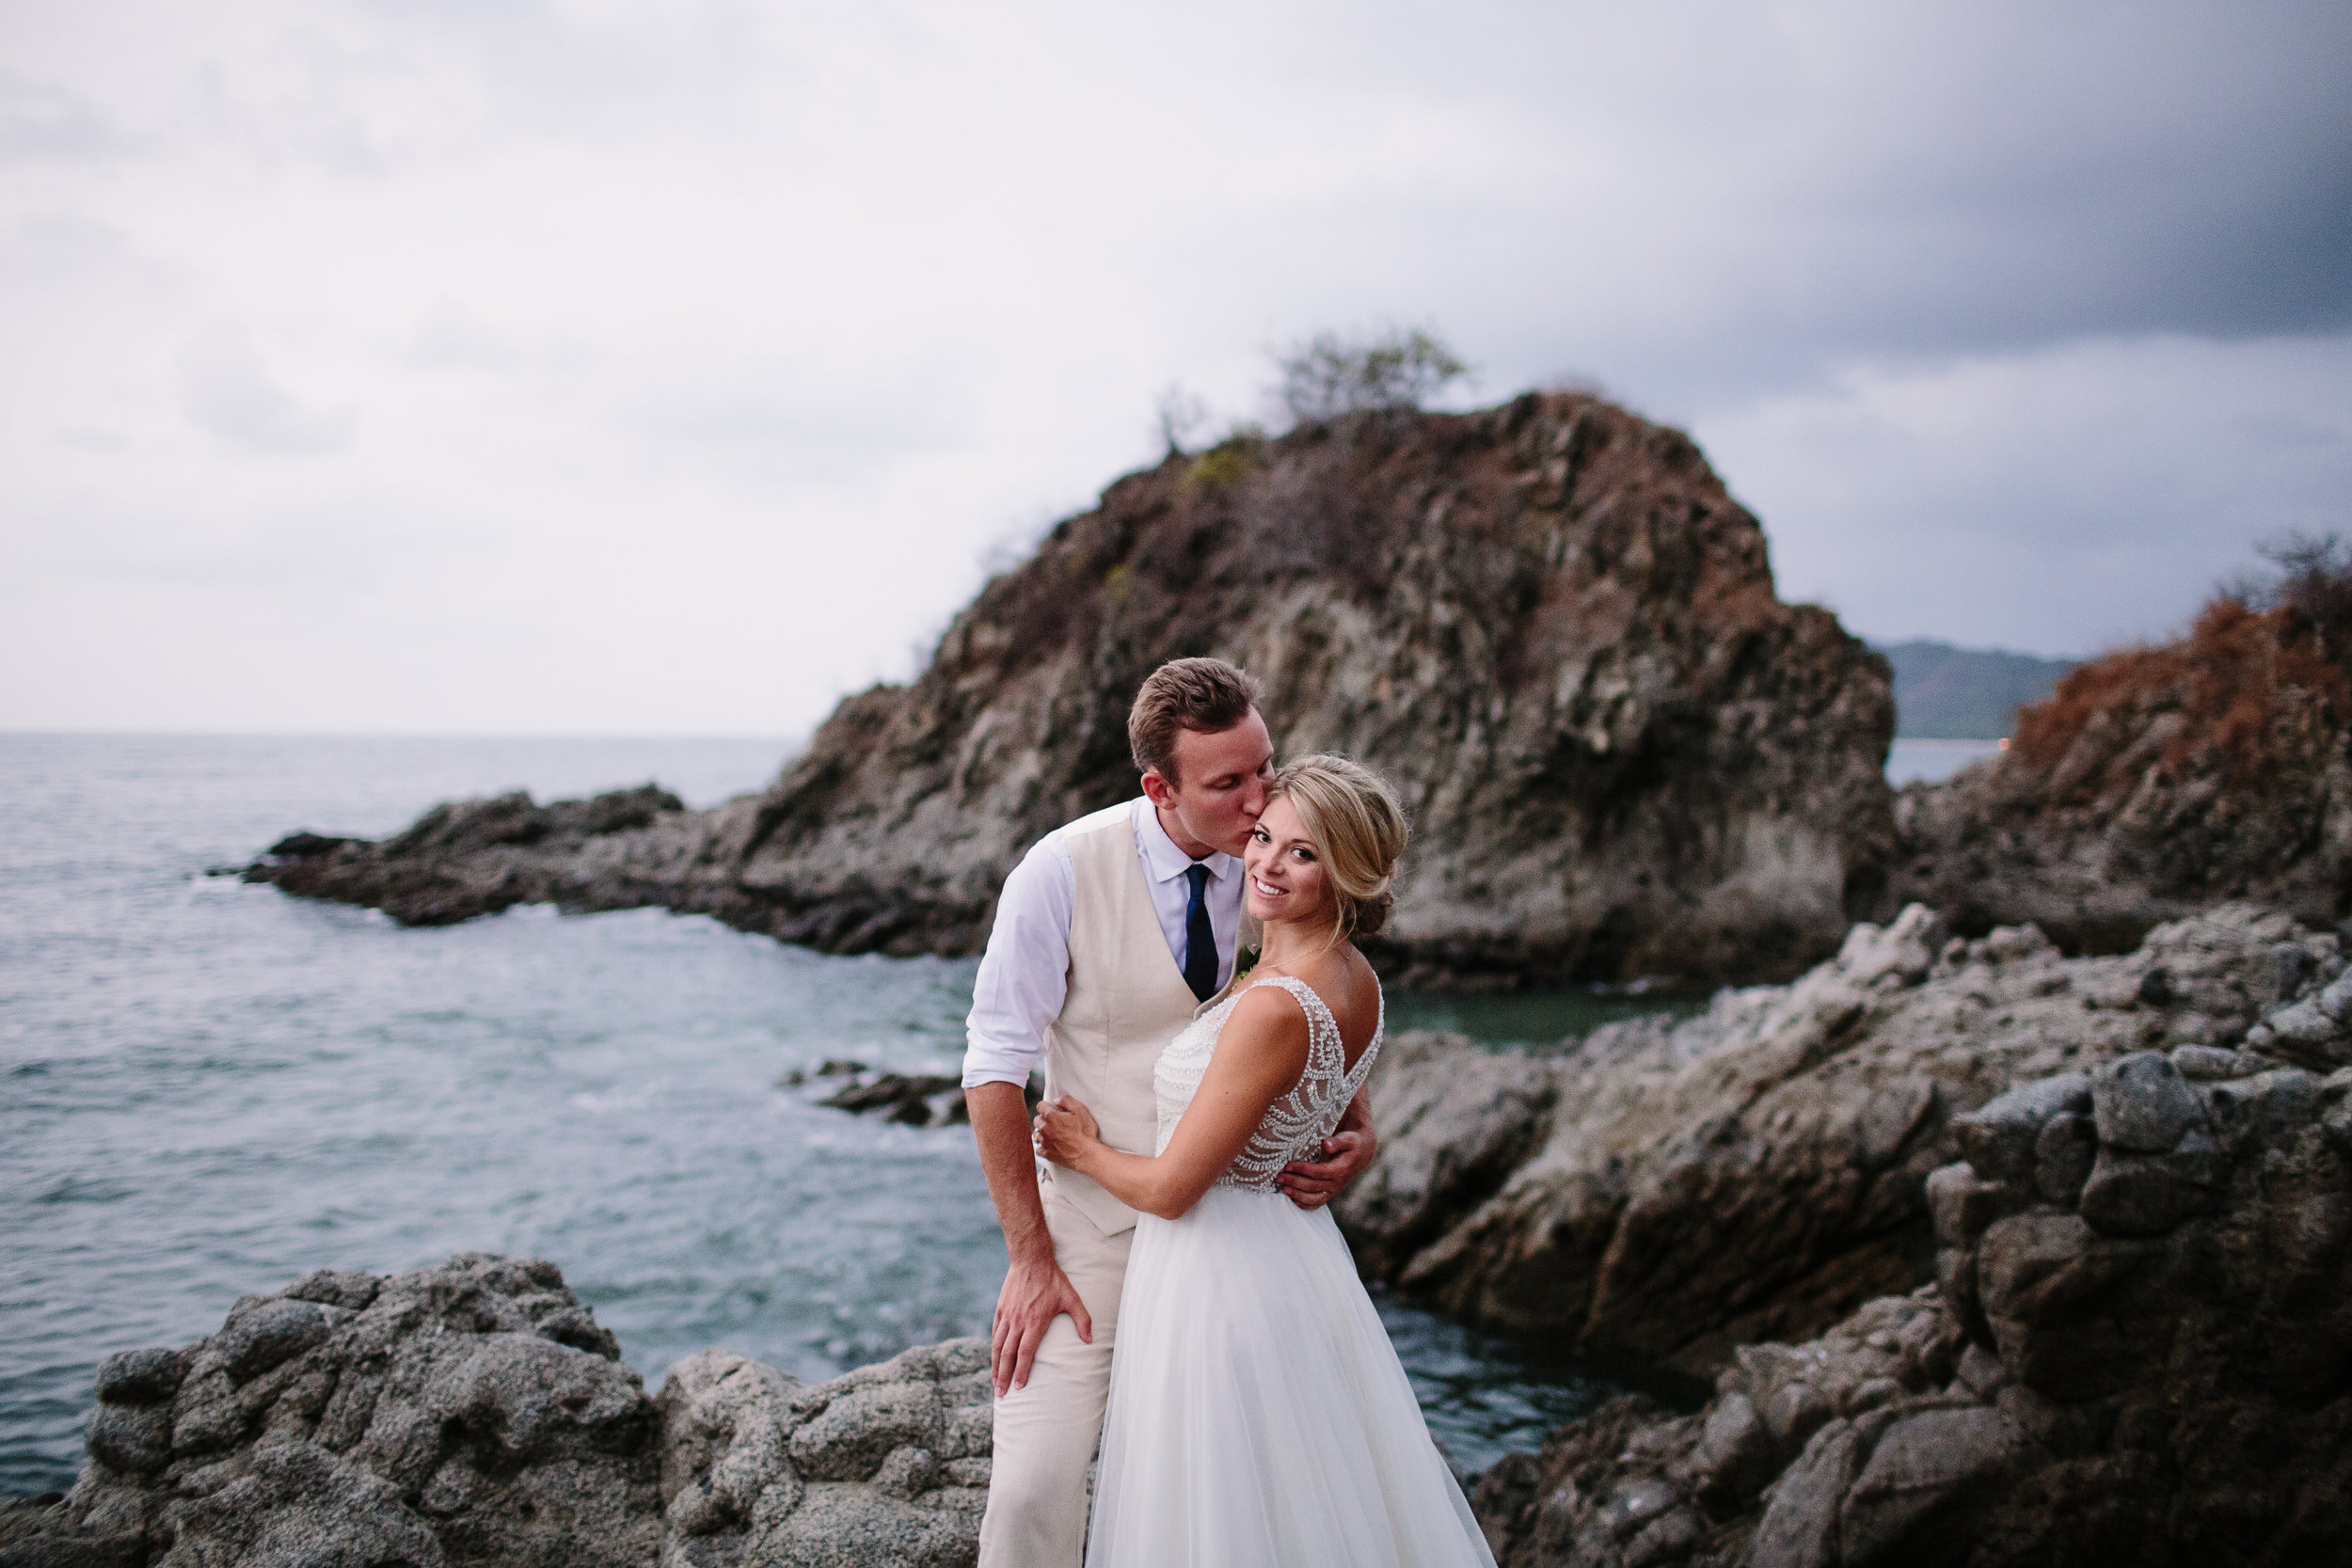 Taryn Baxter Photographer_Jaime+Jay_Wedding-751.jpg